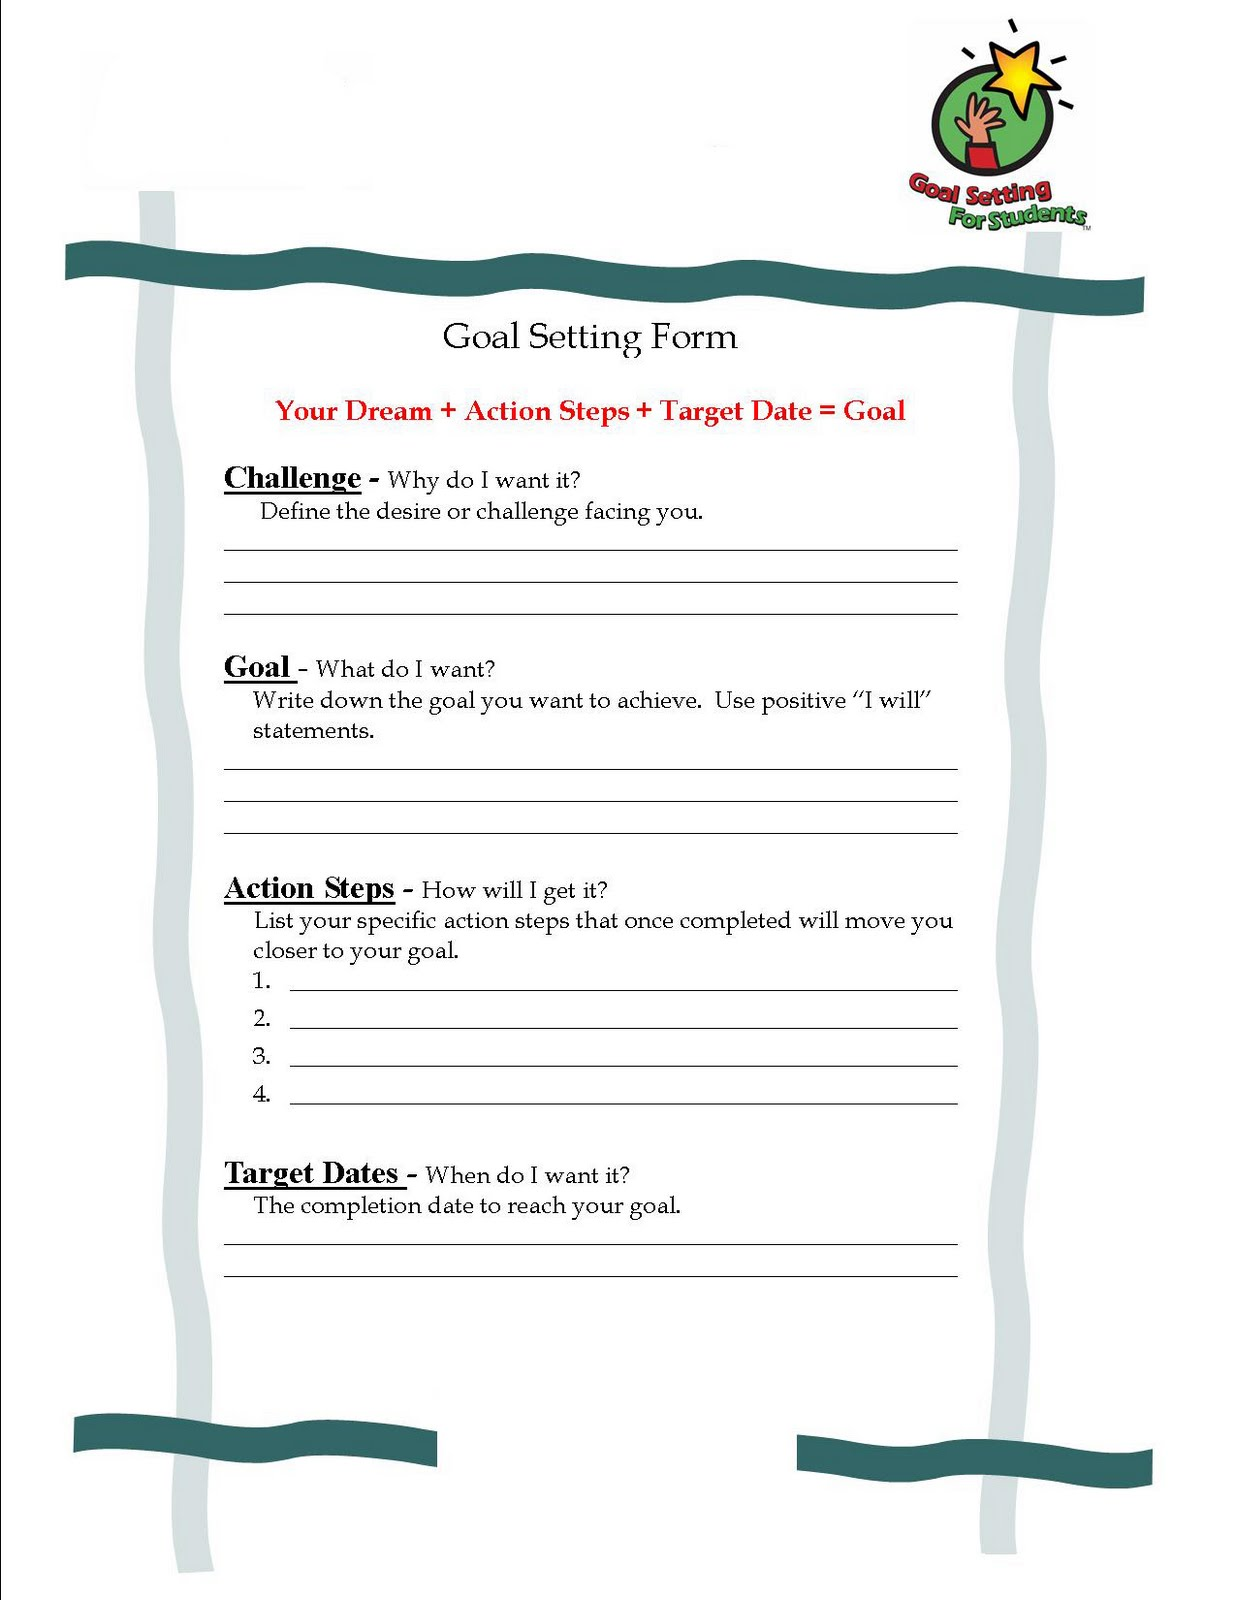 Kathy Kyritzopoulos Student Goal Setting